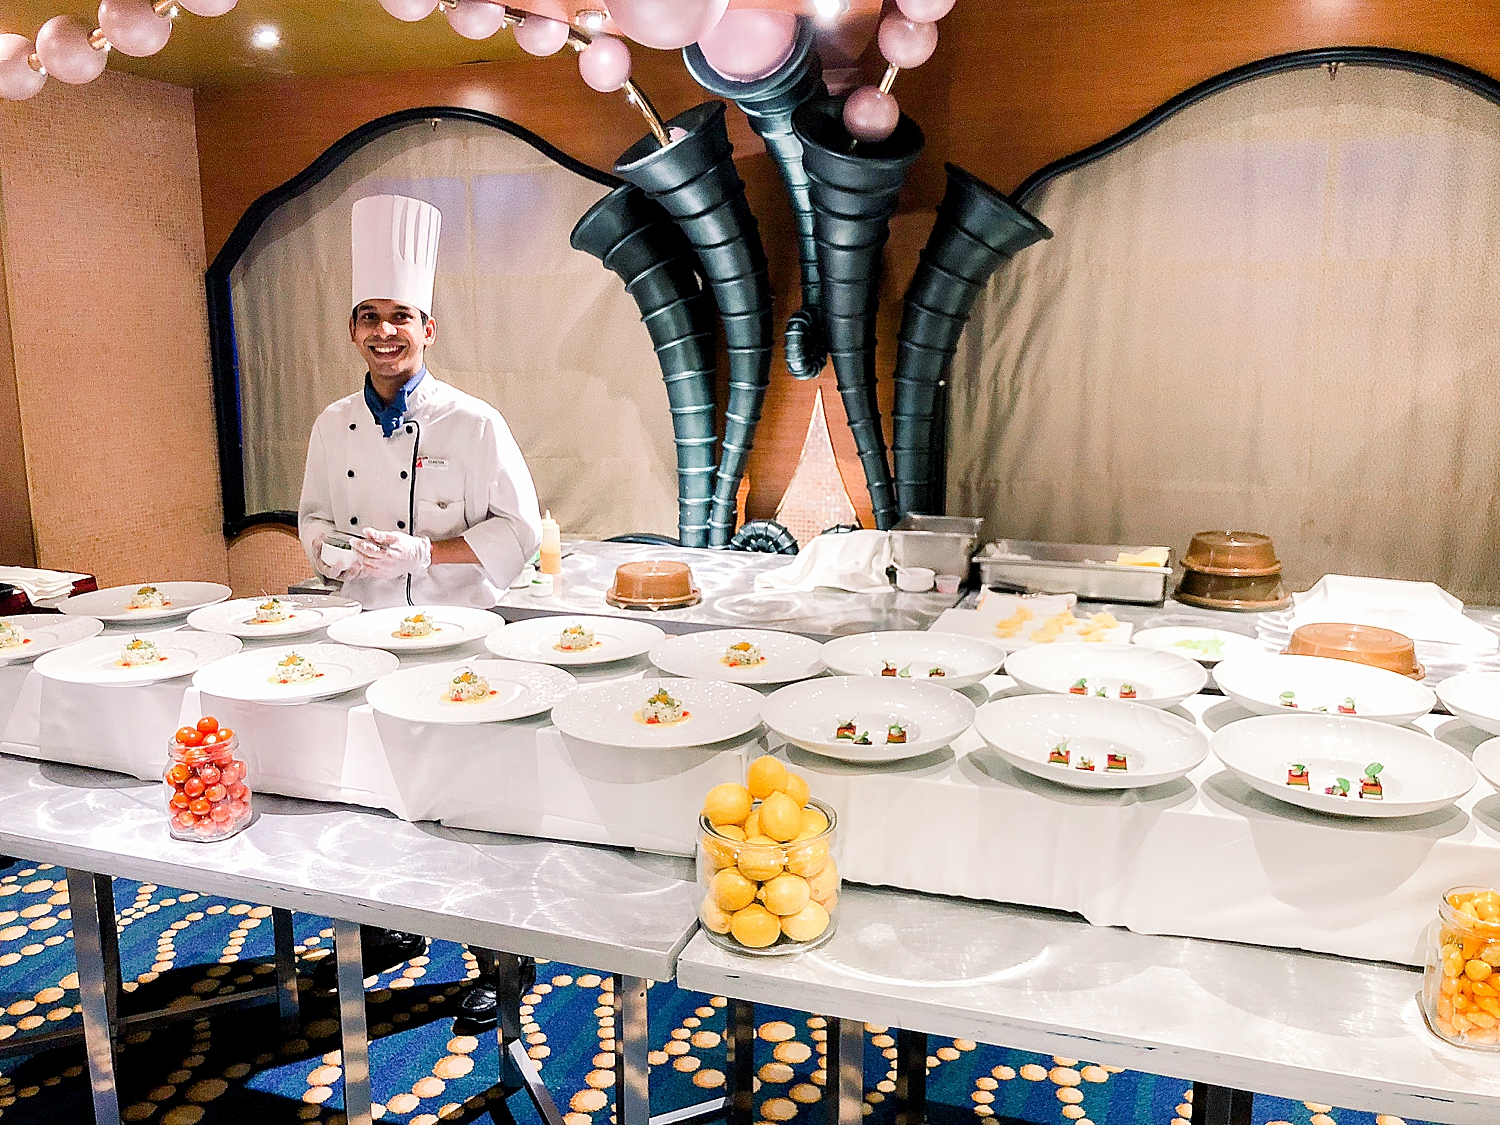 Chef's Table experience aboard the Carnival Splendor.